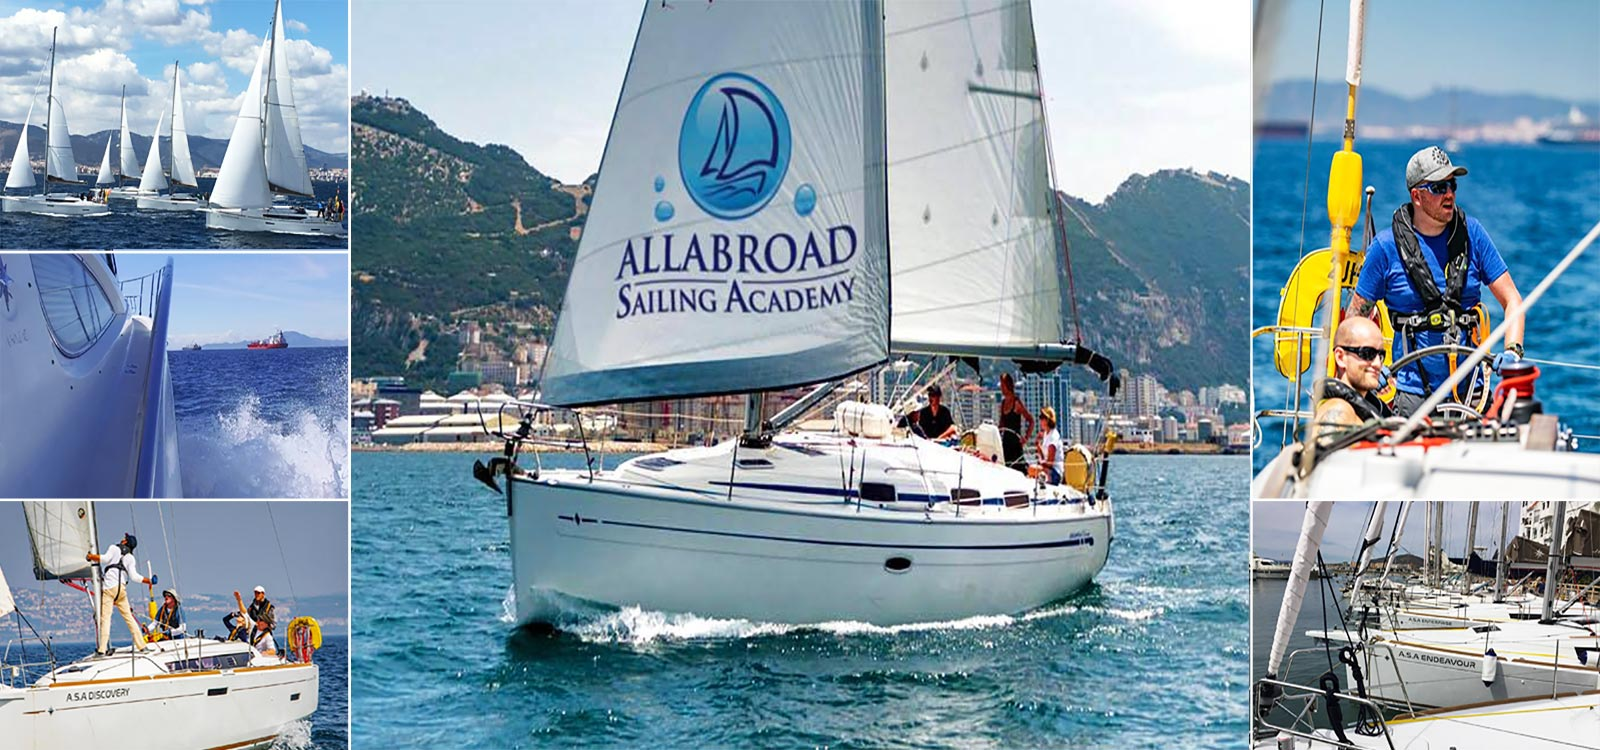 Allabroad Sailing Academy